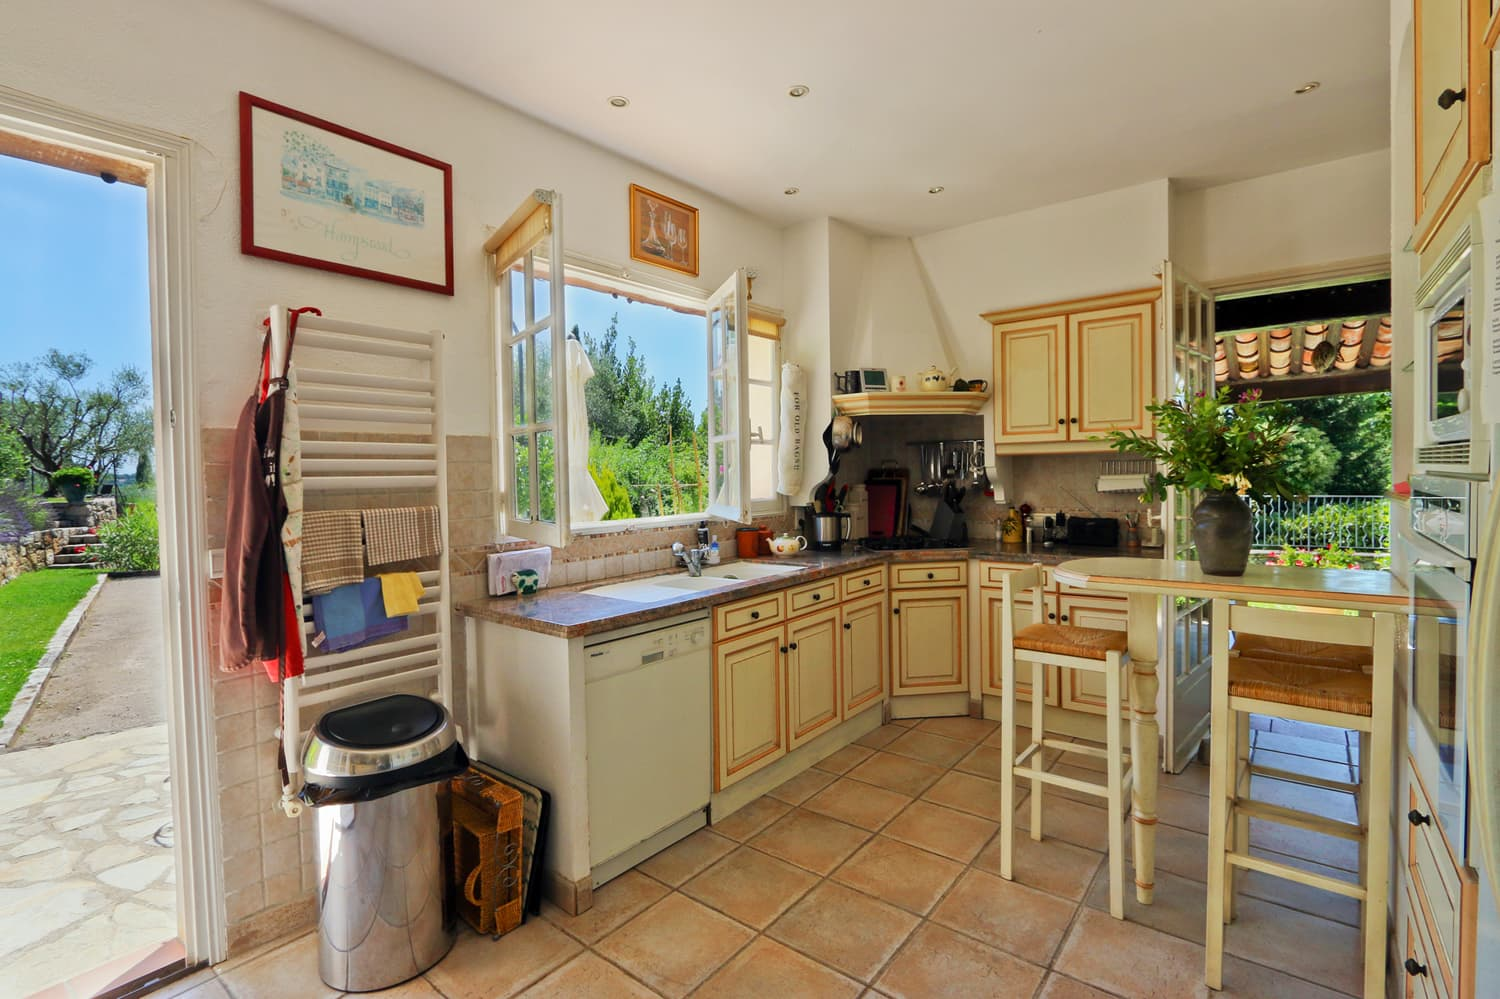 Kitchen in Provence holiday villa